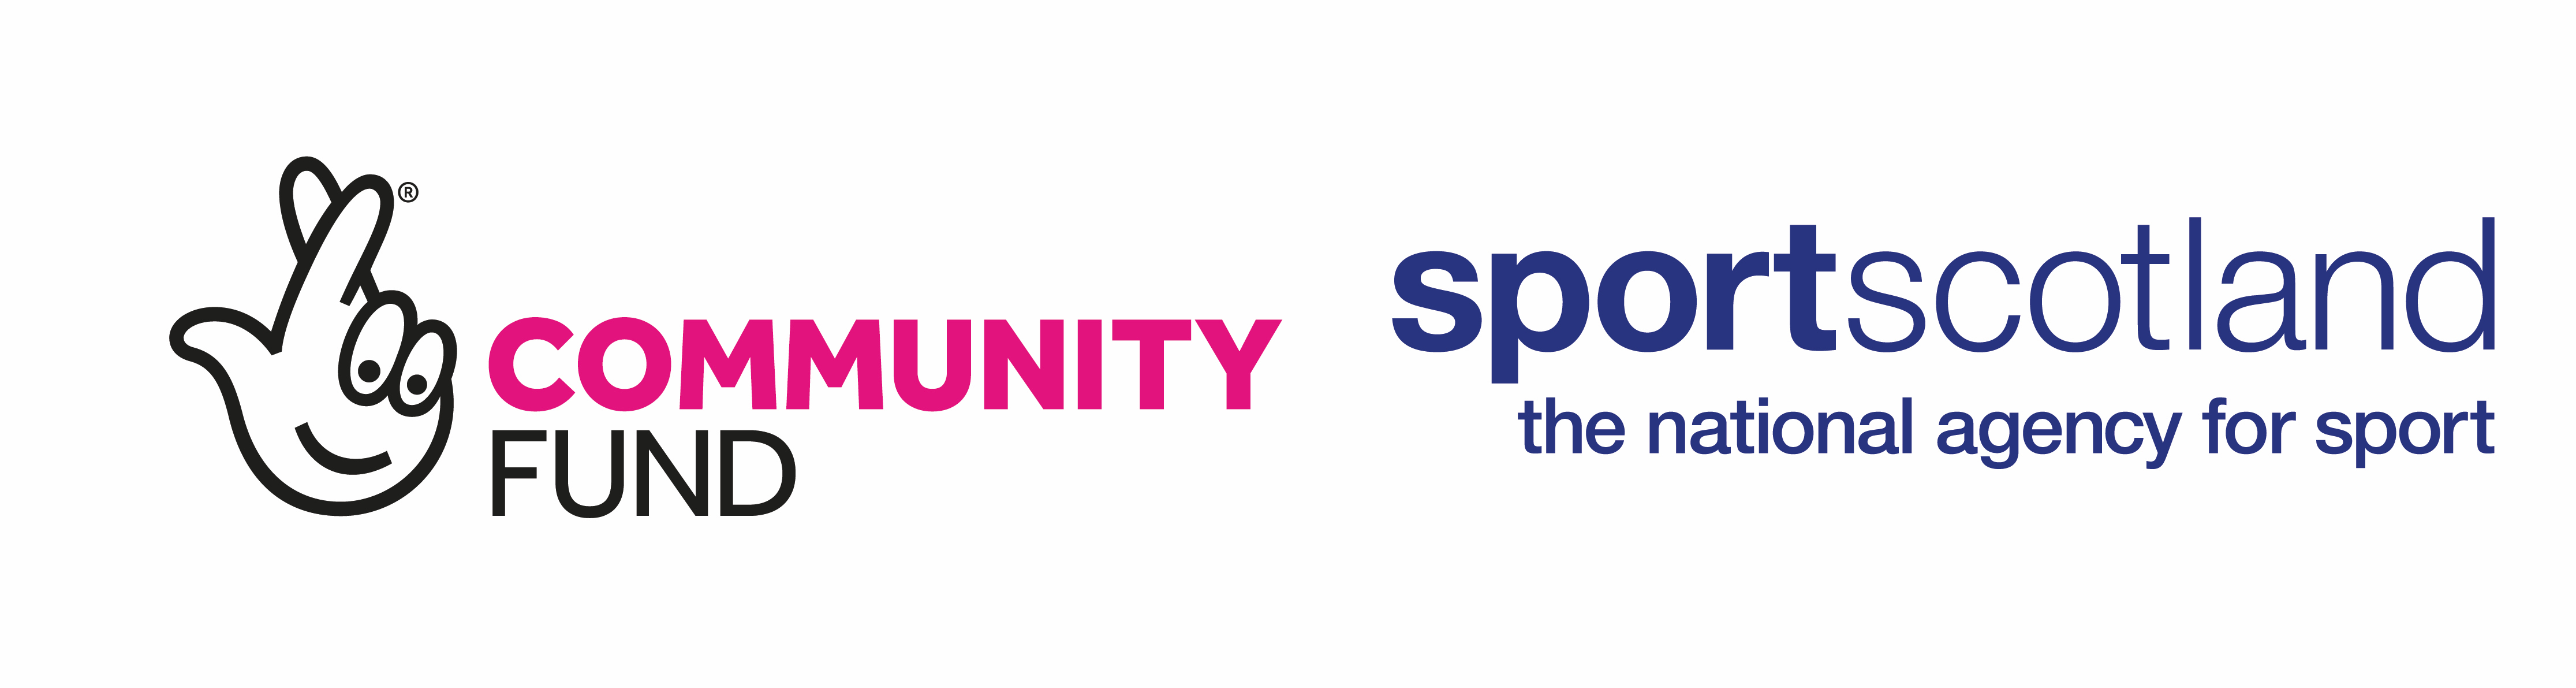 Logos of The National Lottery Community Fund and sportscotland